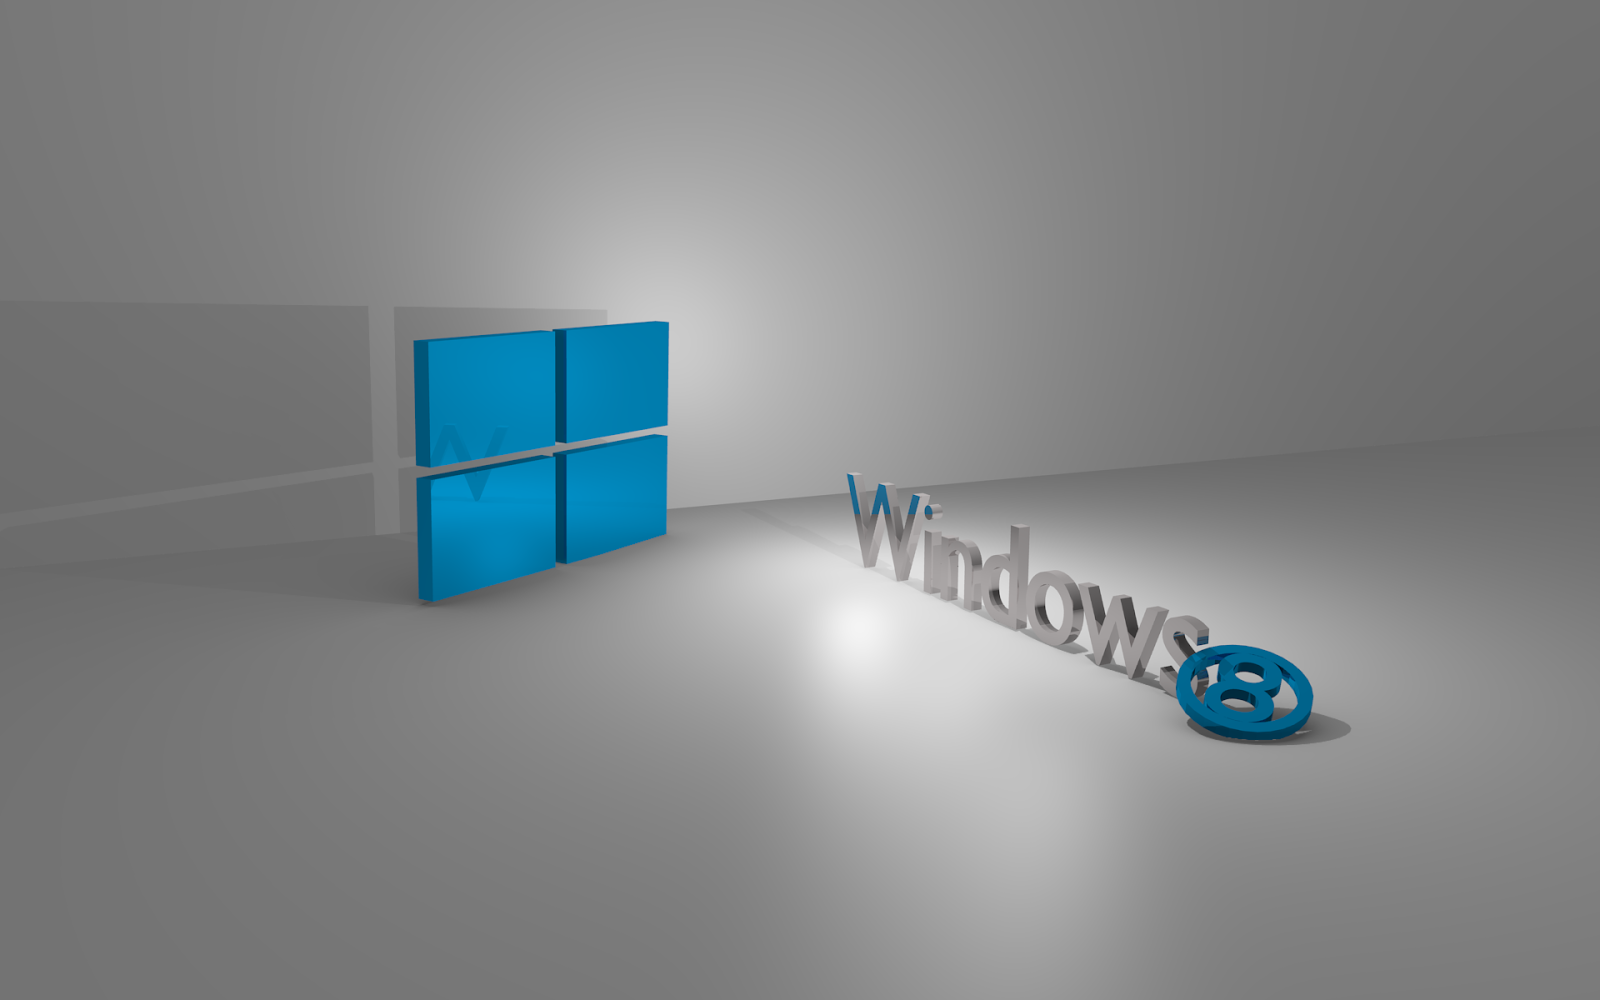 3d windows 8 wallpapers hindi motivational quotes hd